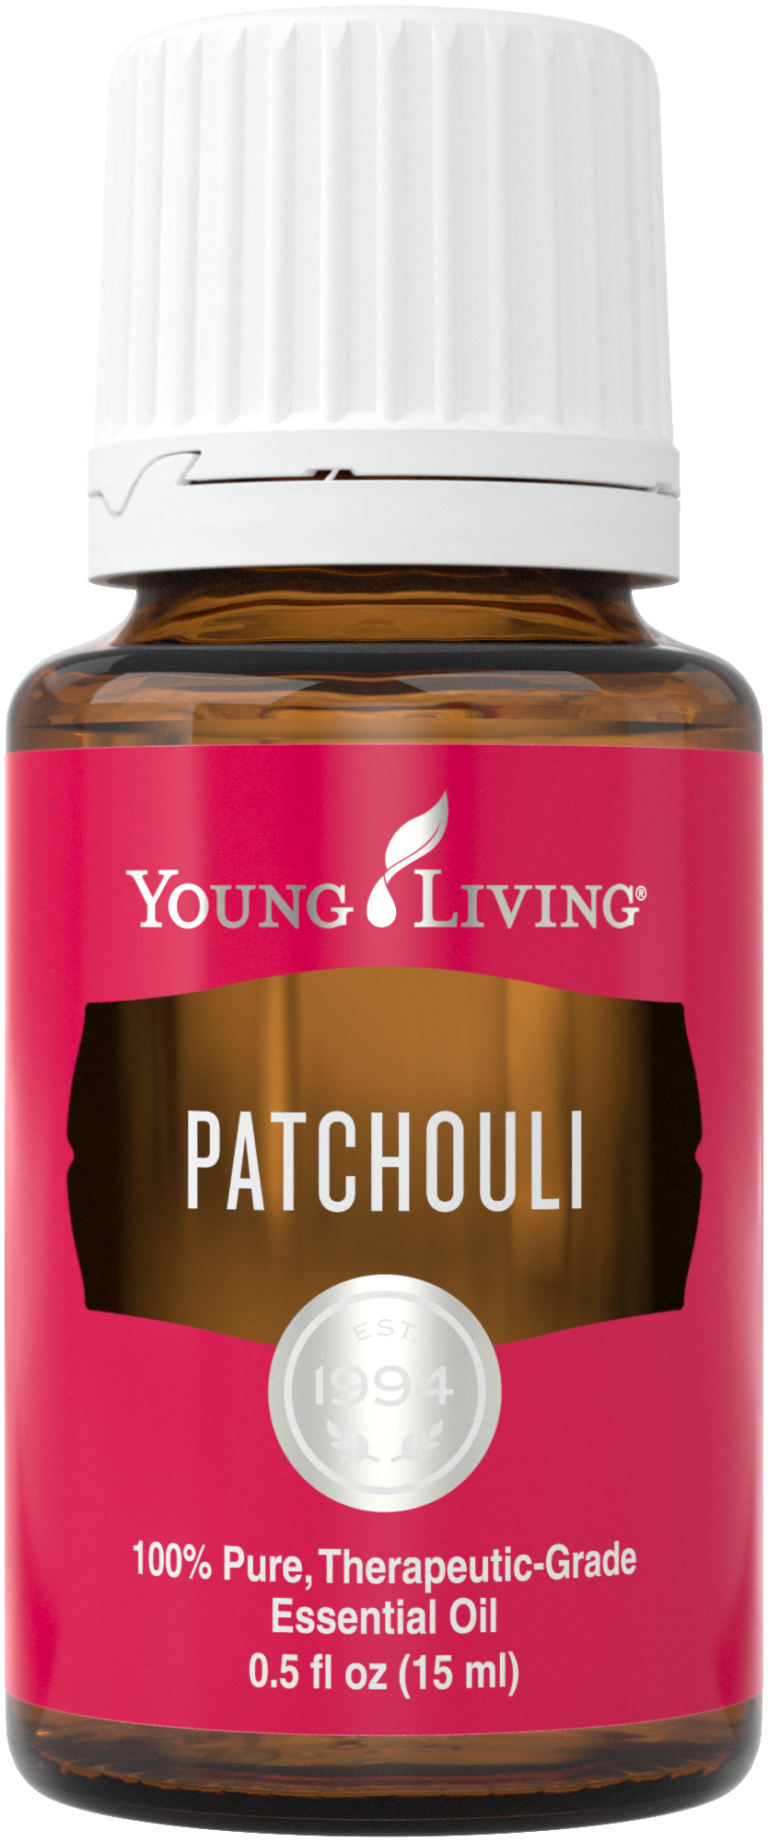 patchouli_15ml_silo_us_2016_24501127086_o